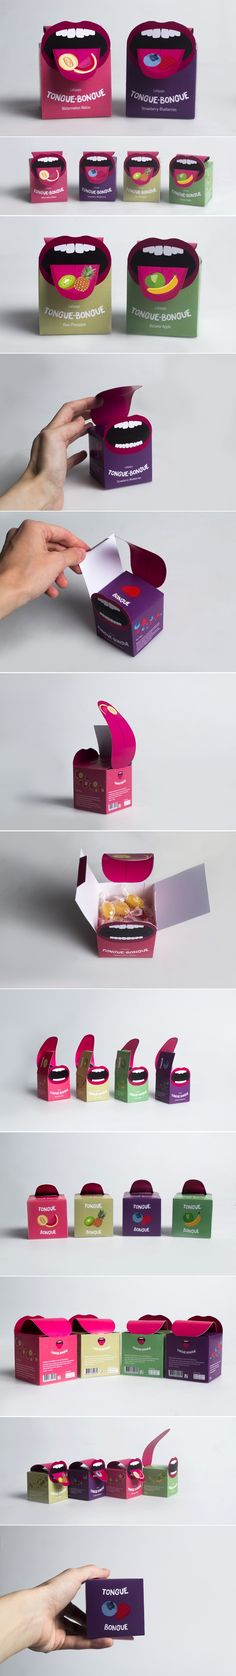 Check Out This Clever Tongue-Inspired Concept for Candy Packaging — The Dieline | Packaging & Branding Design & Innovation News